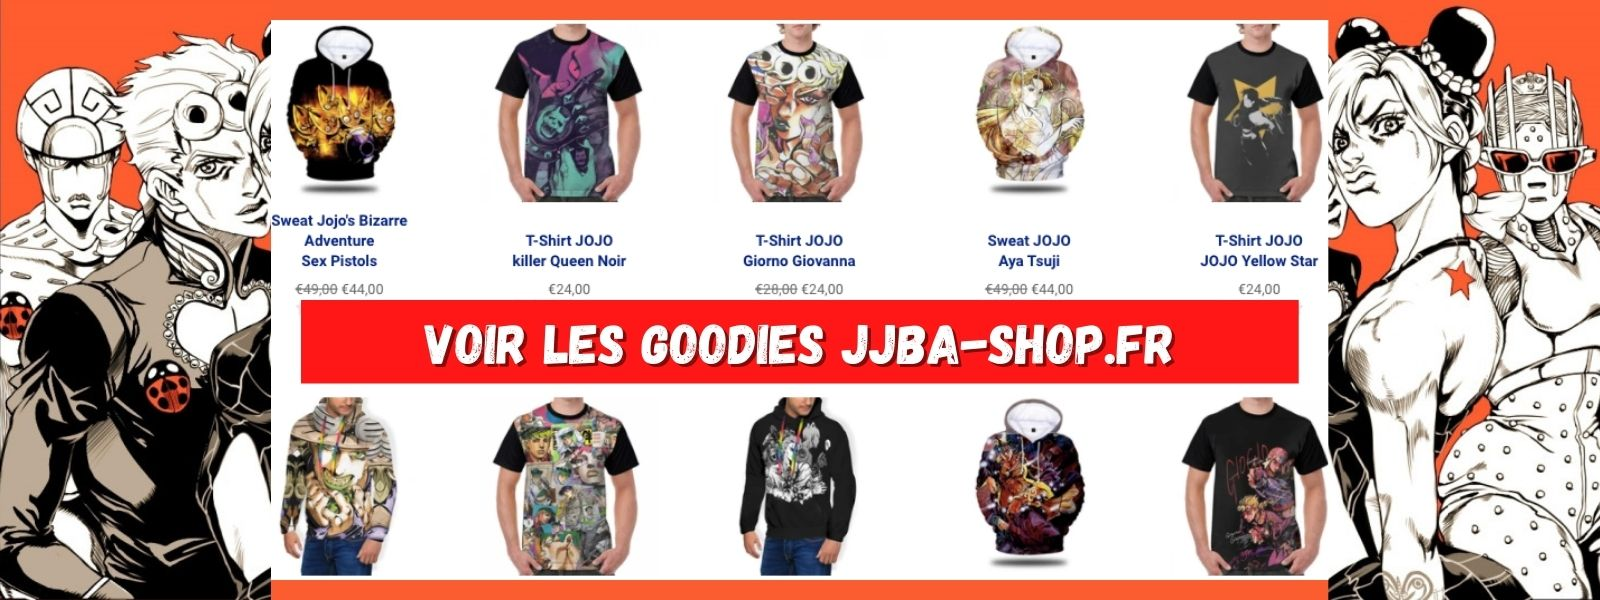 goodies jojo jjba shop